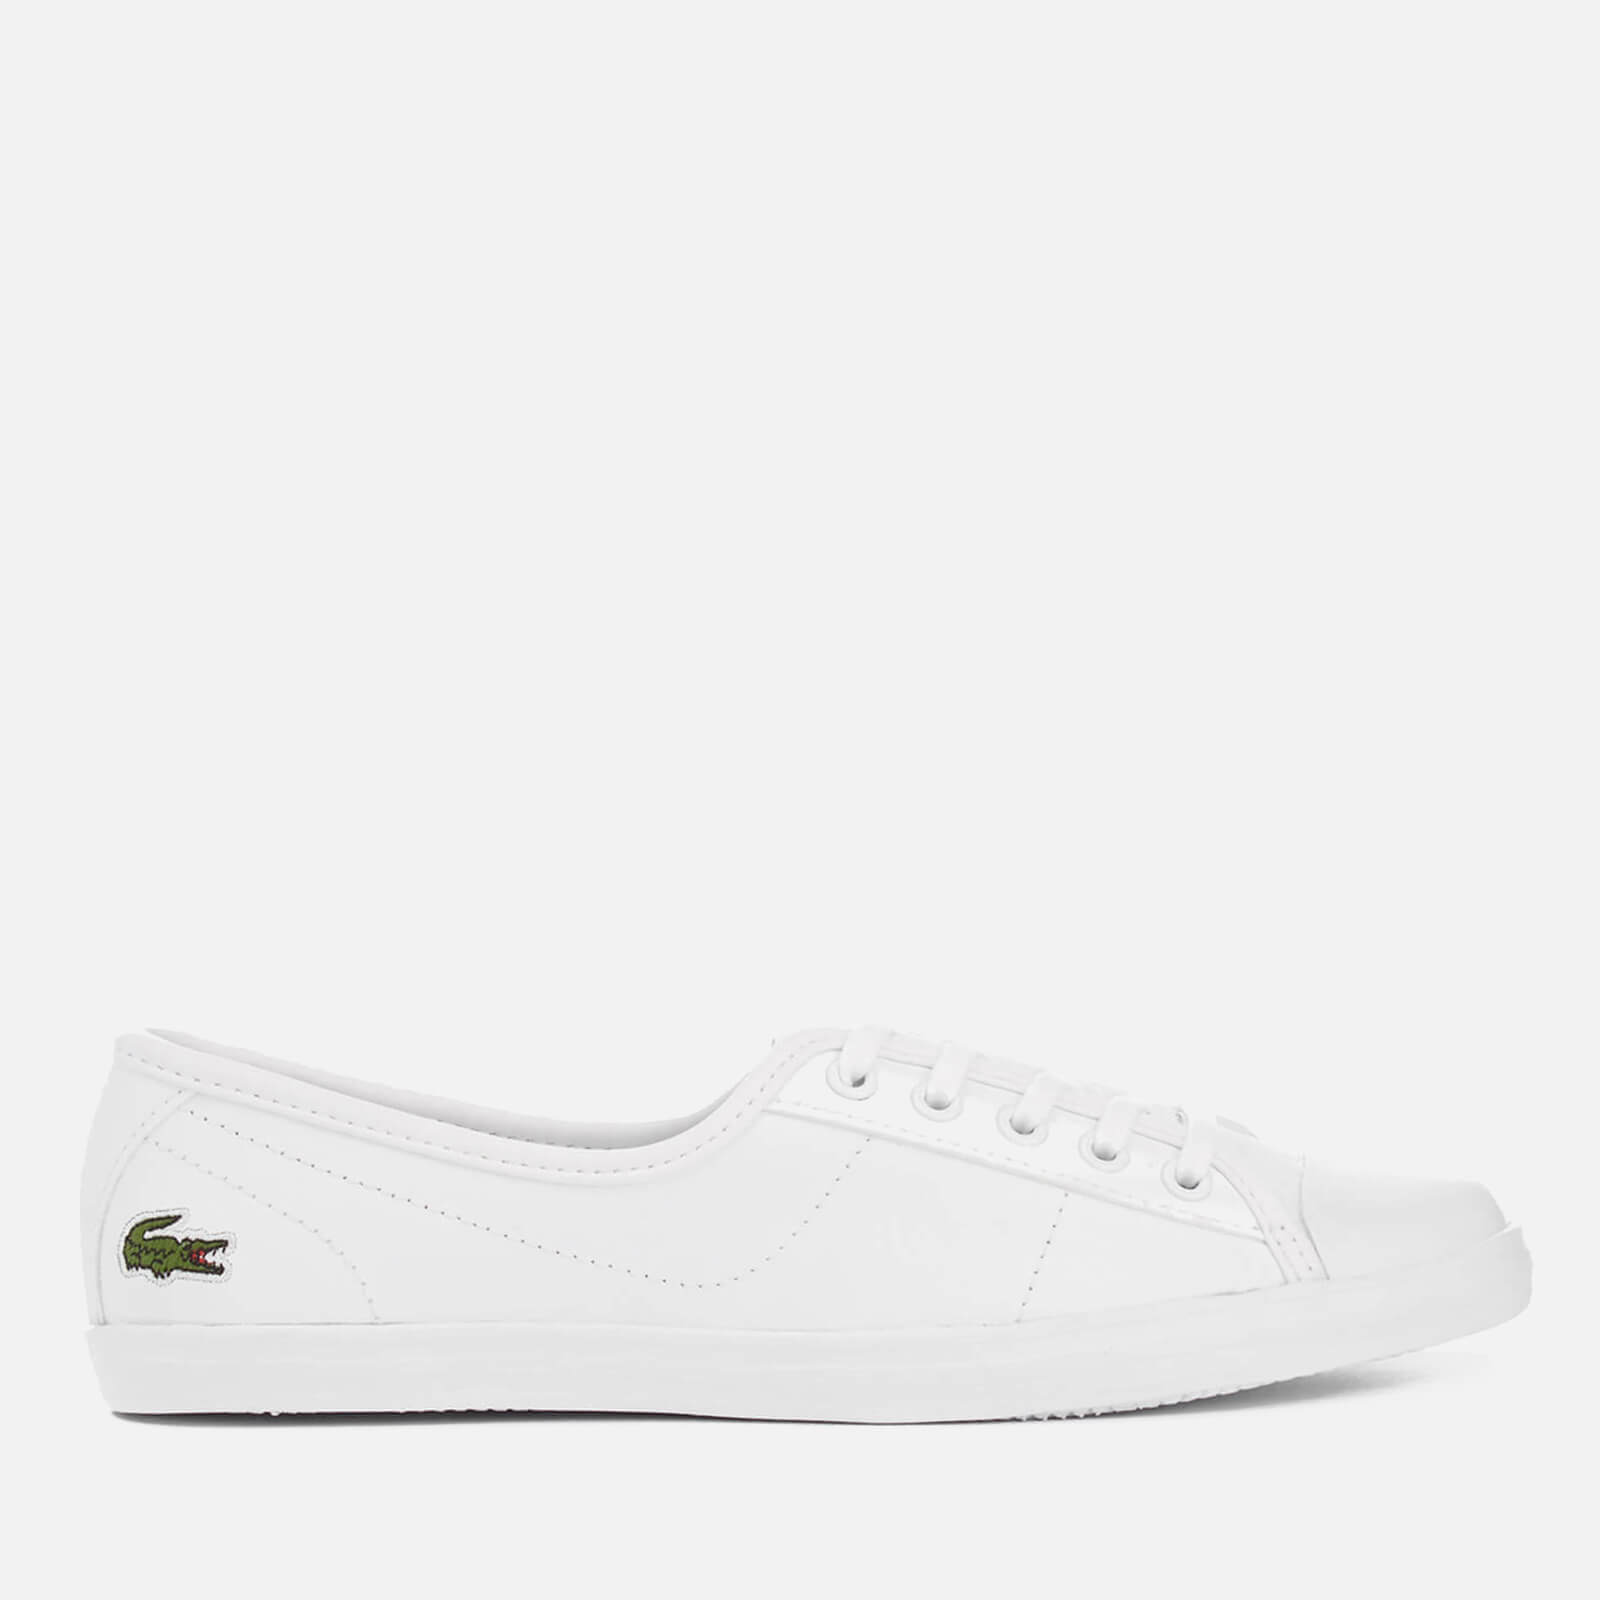 many styles choose latest finest fabrics Lacoste Women's Ziane Bl 1 Leather Lace Up Pumps - White